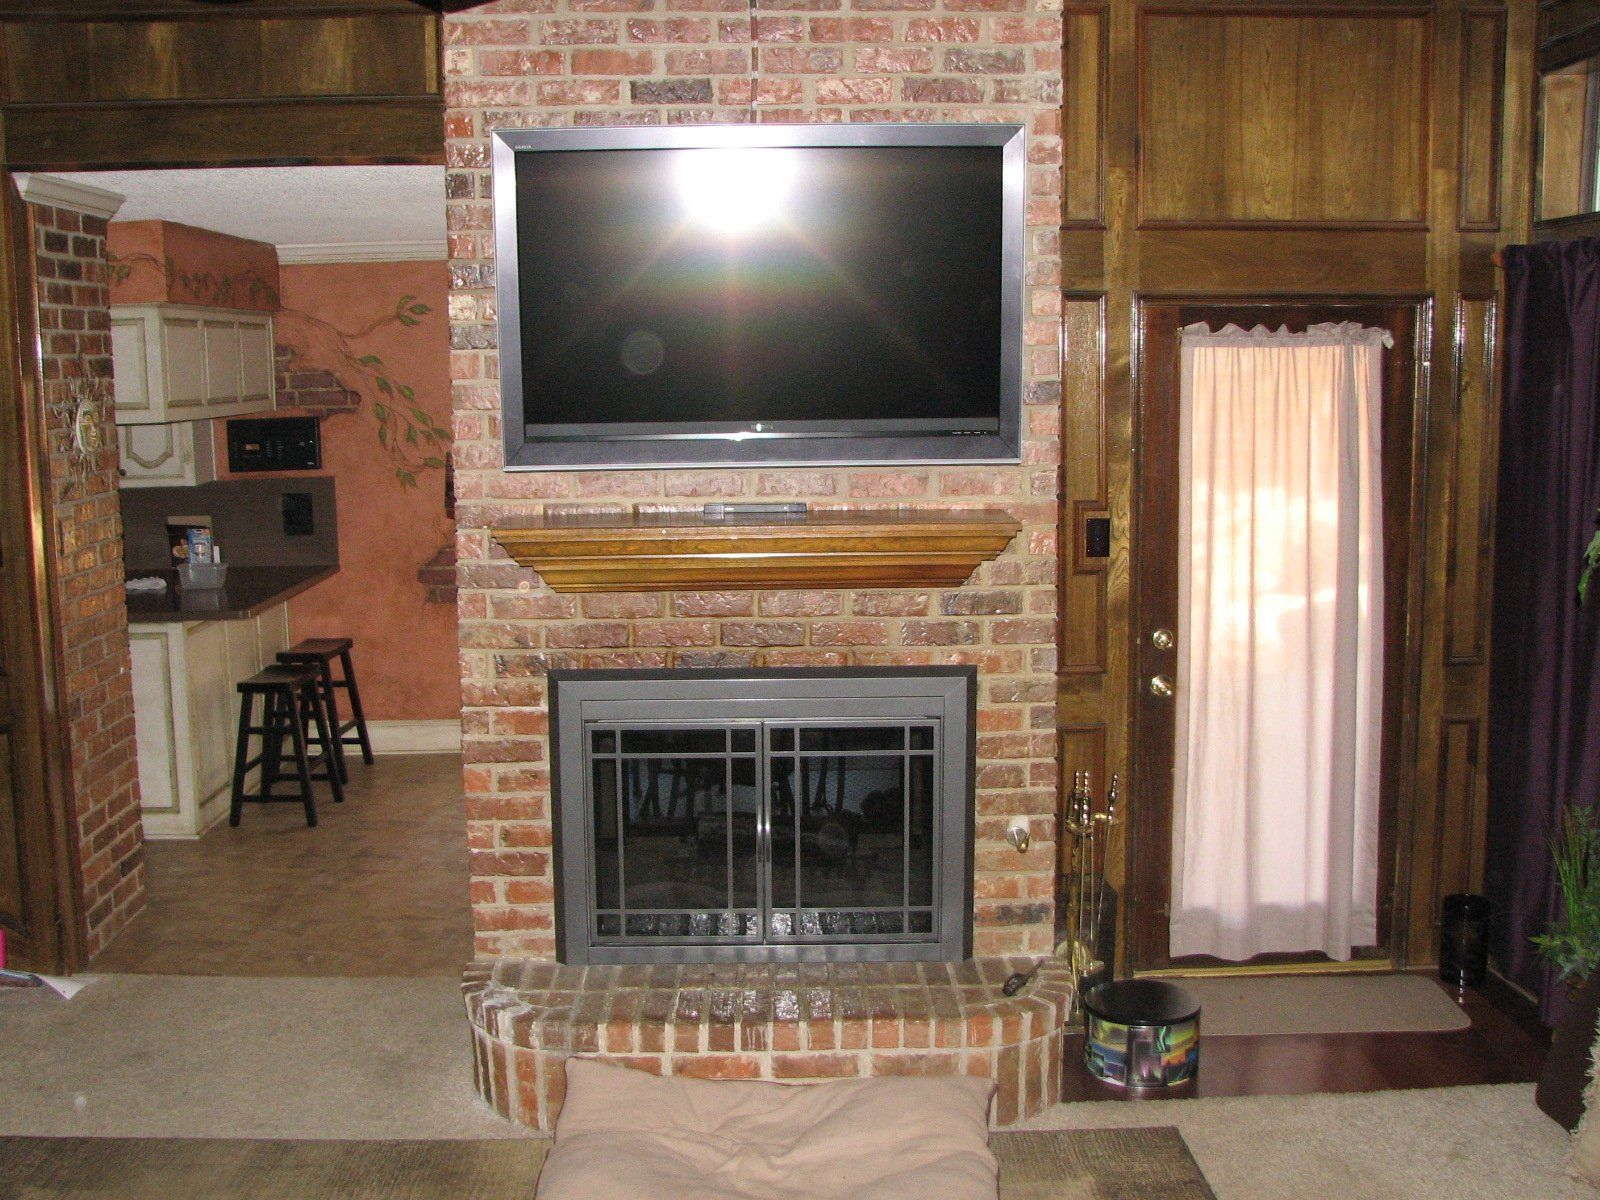 Portrayal of How to Get the Proper Fireplace Mantel Height for the